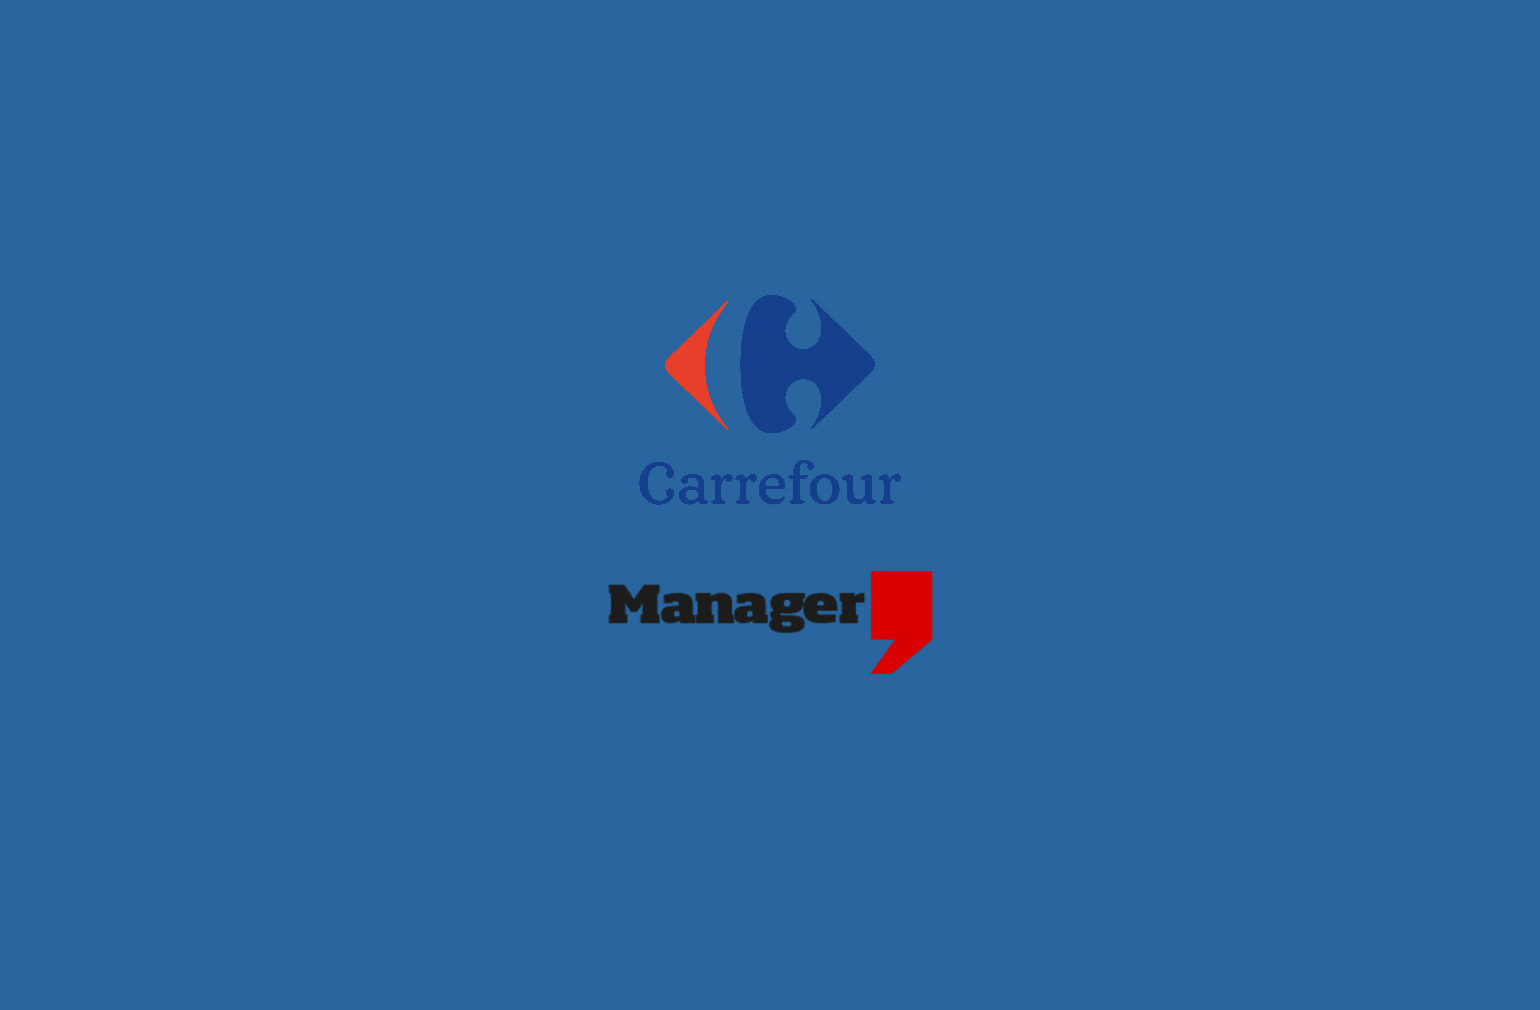 Carrefour Manager